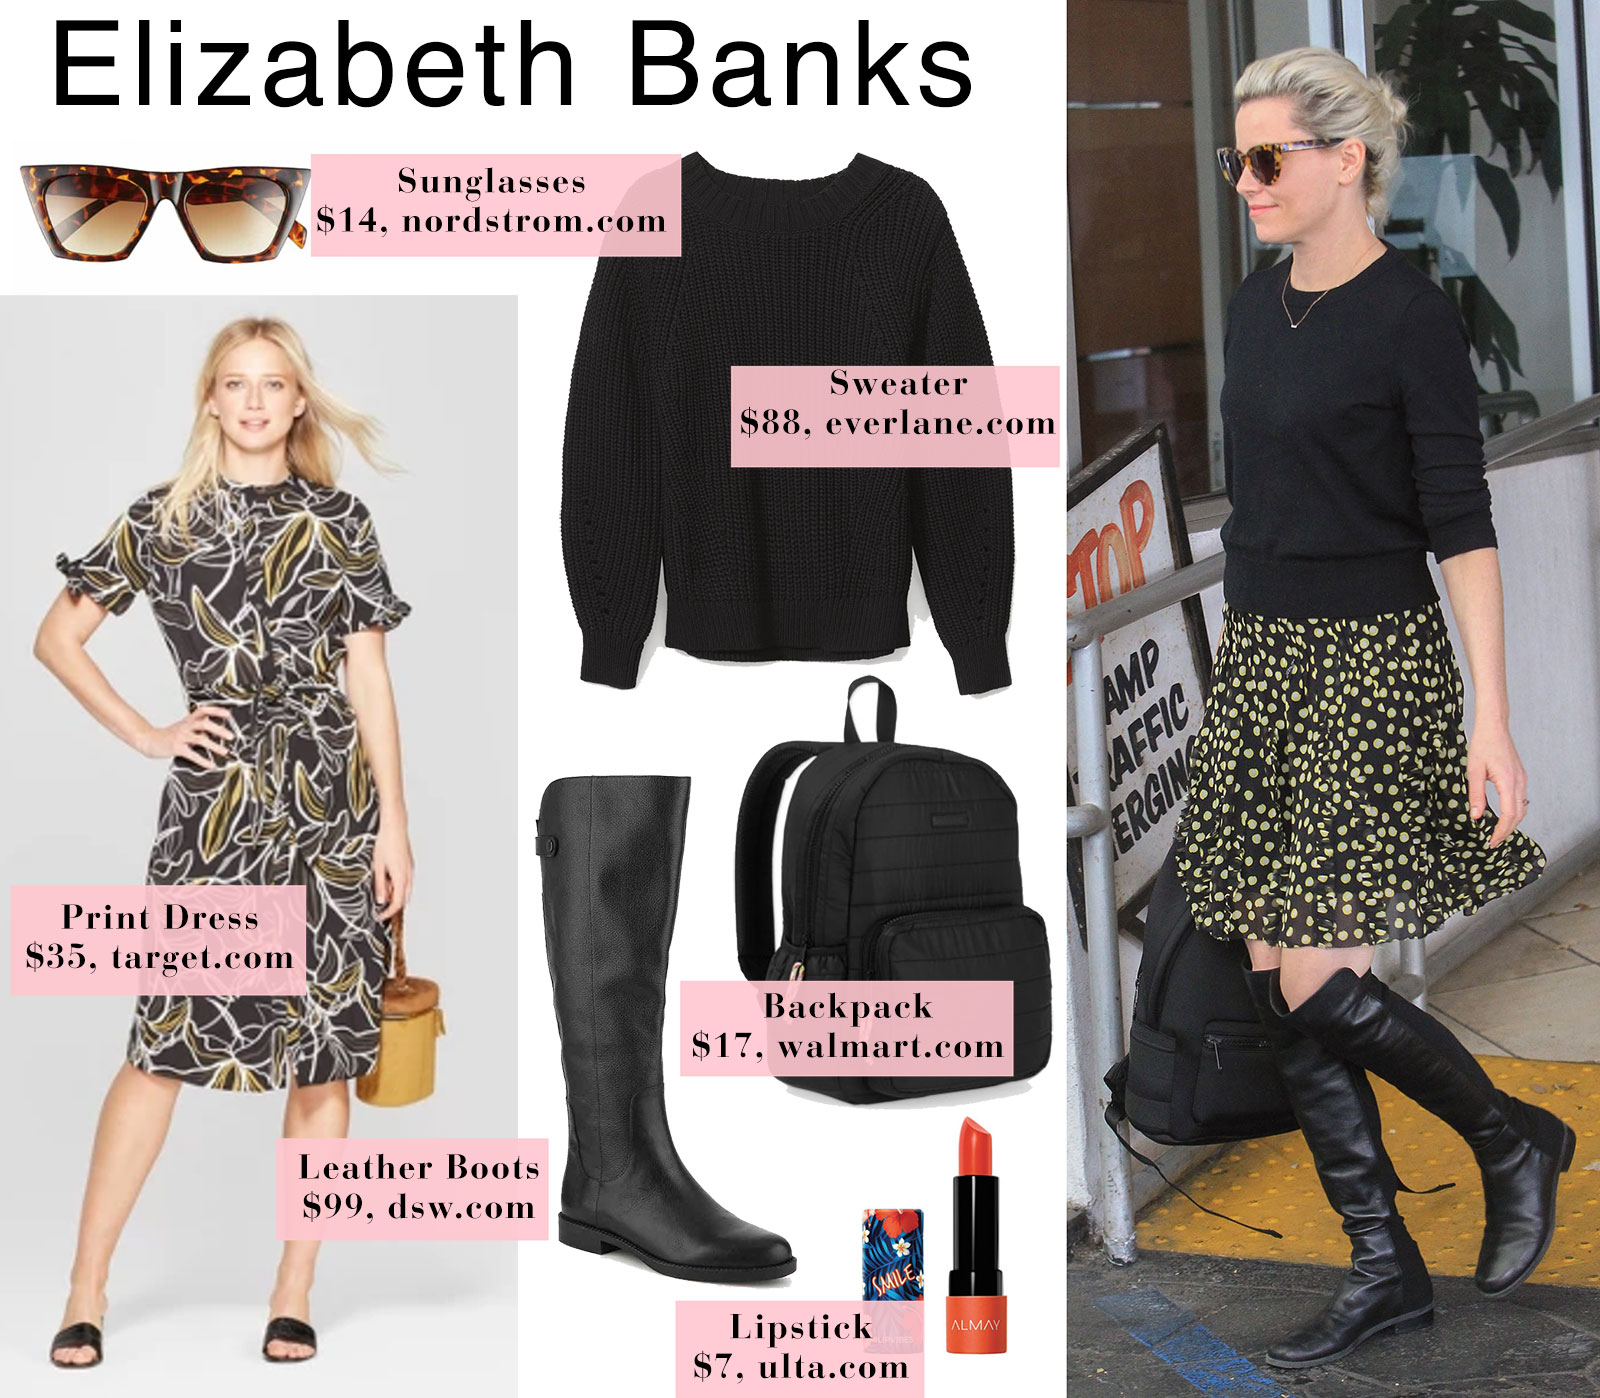 Elizabeth Banks outfit idea - layer a sweater over a spring dress